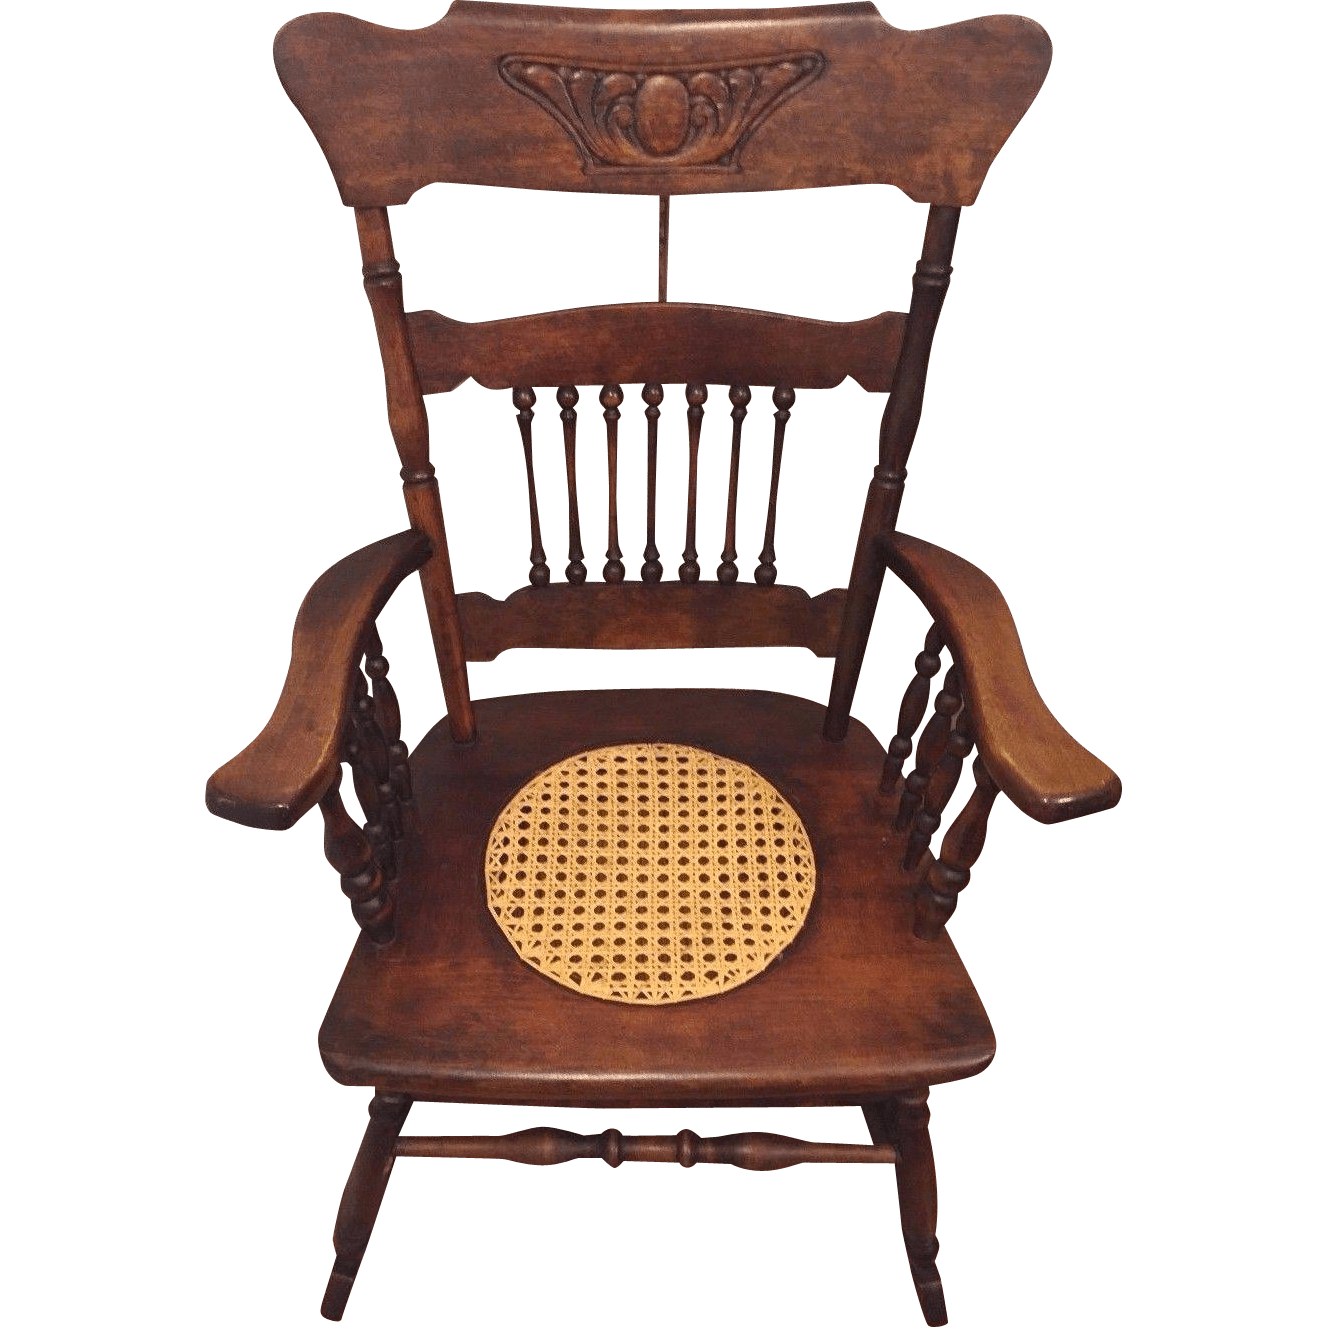 antique cane chairs dining metal legs uk rocking chair w seat hartwig and kemper